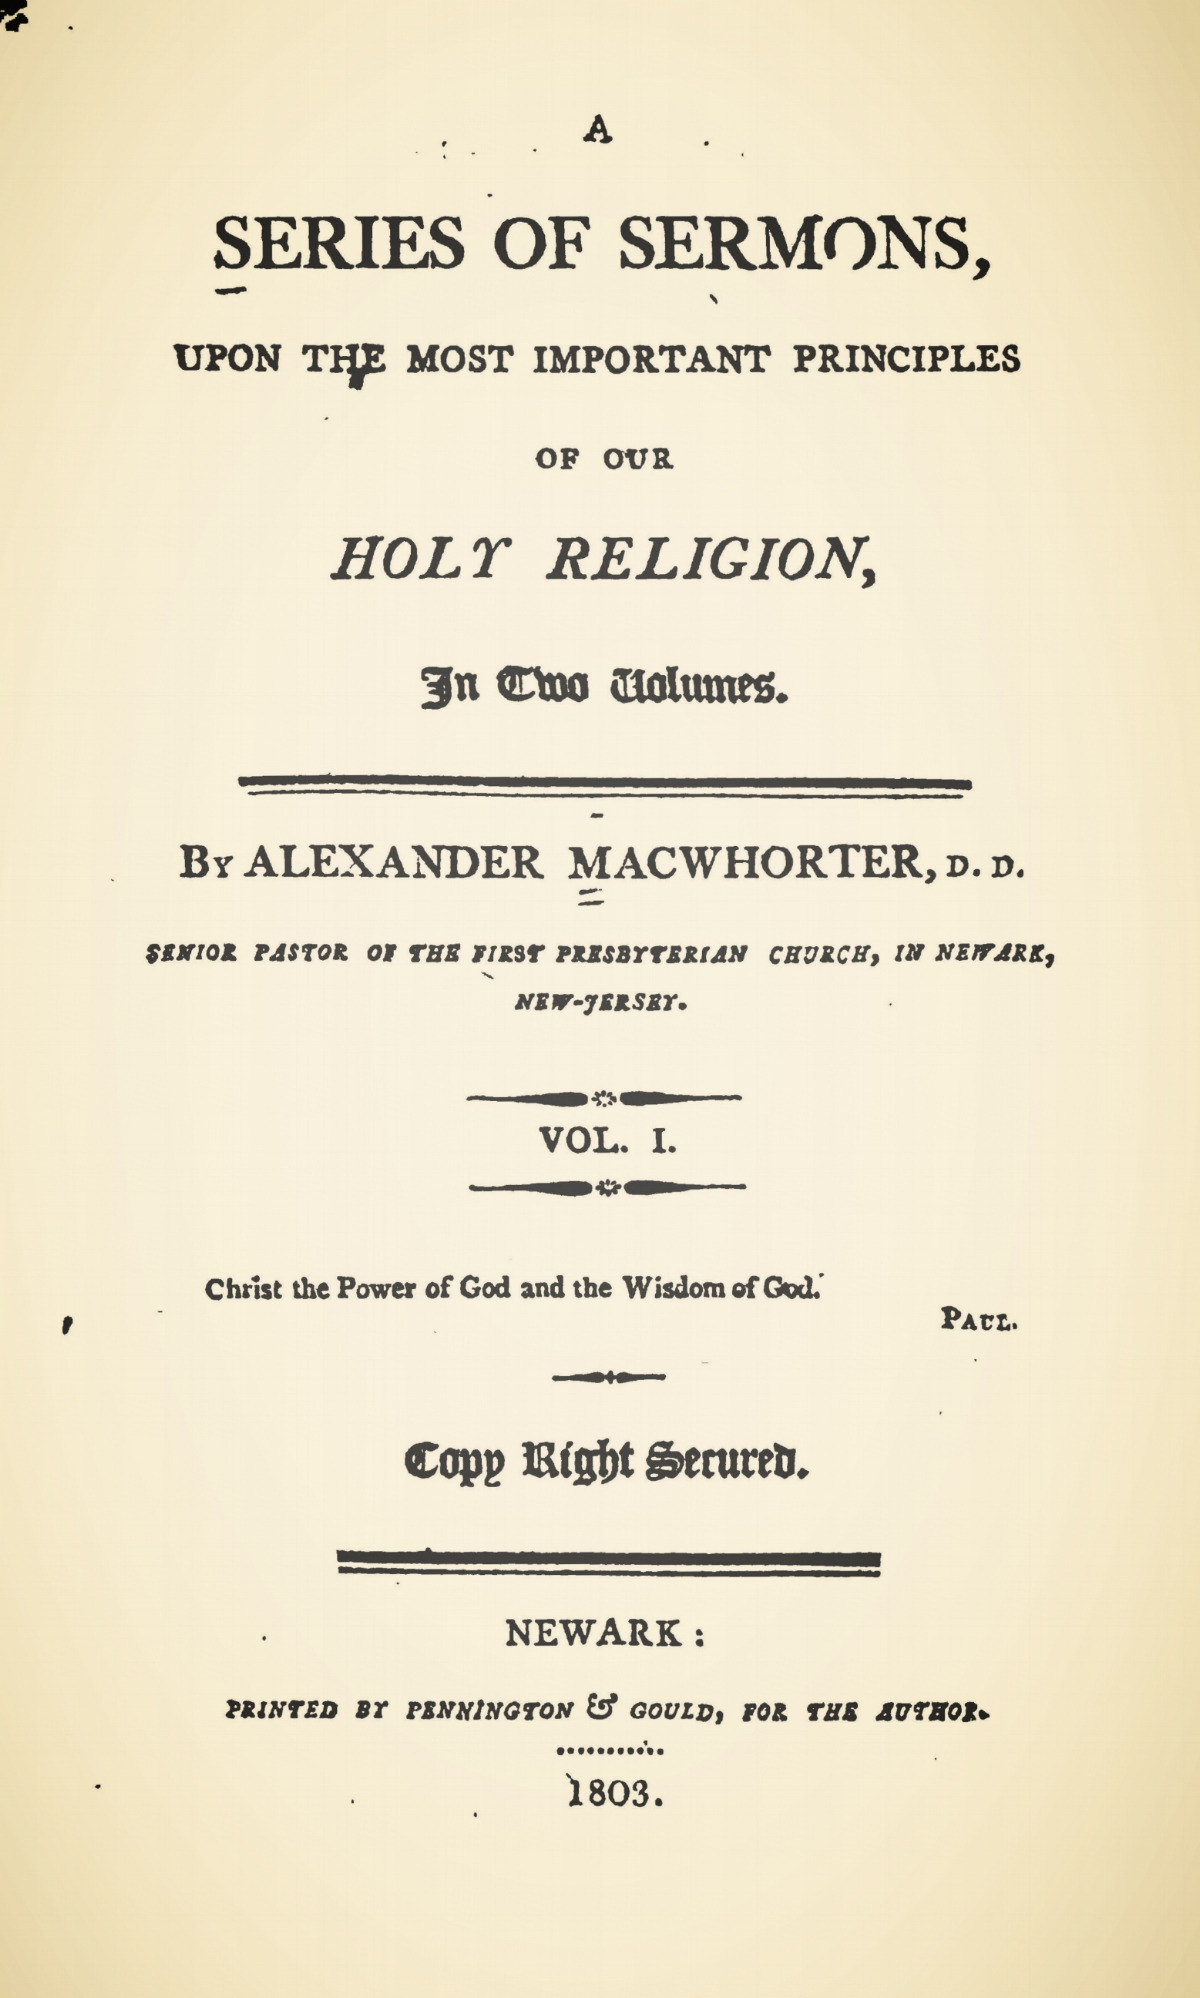 MacWhorter, Alexander, A Series of Sermons, Vol. 1 Title Page.jpg